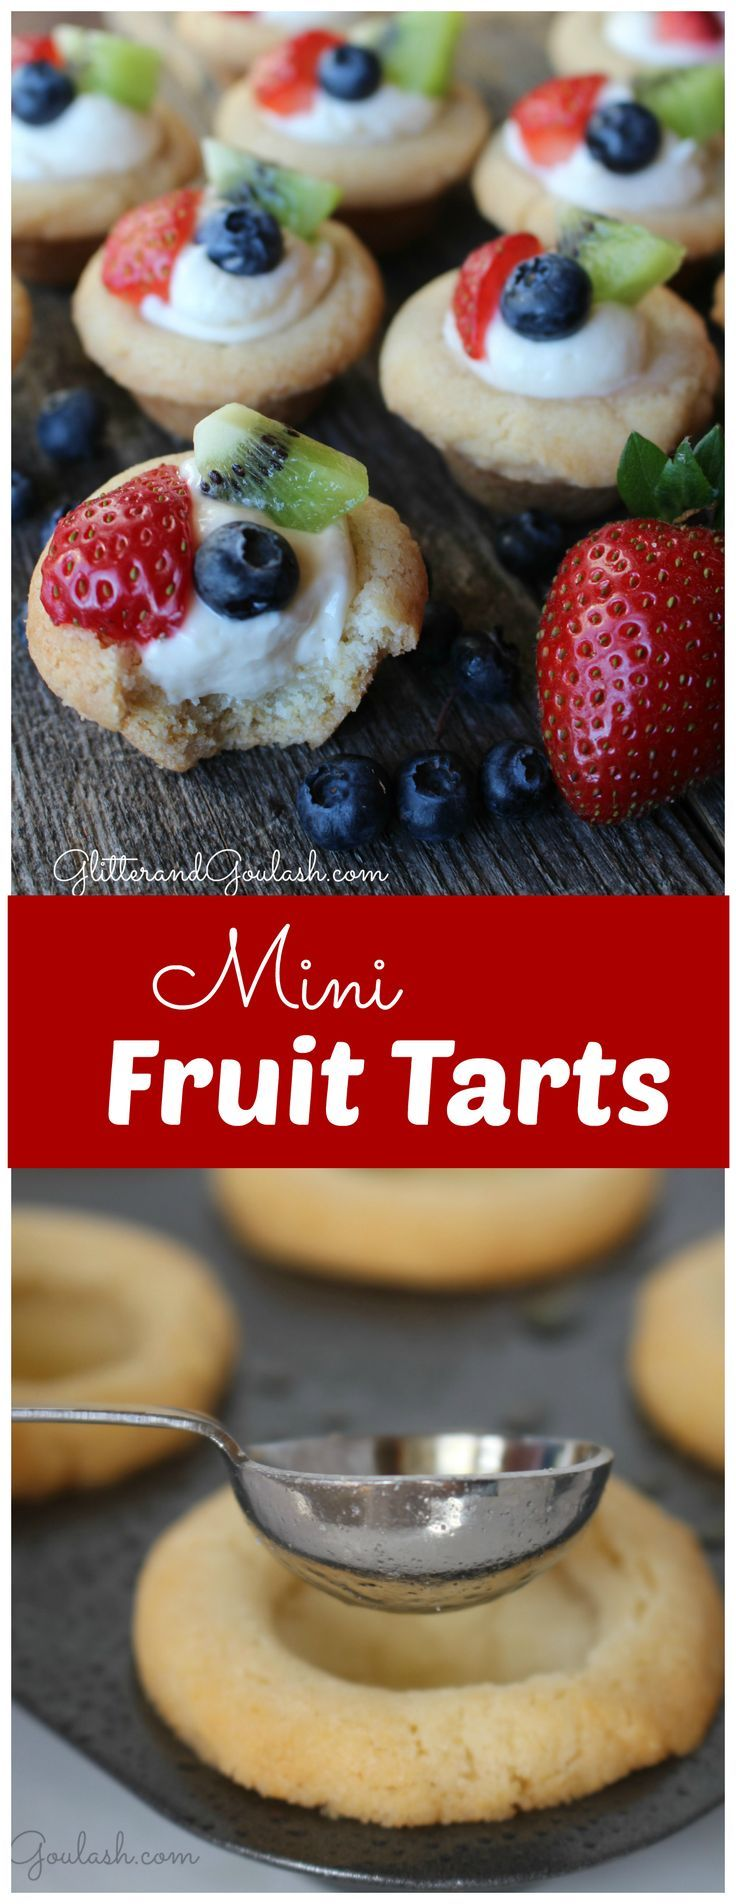 These Mini Fruit Tarts are amazing!! Super quick and easy using sugar cookie mix.